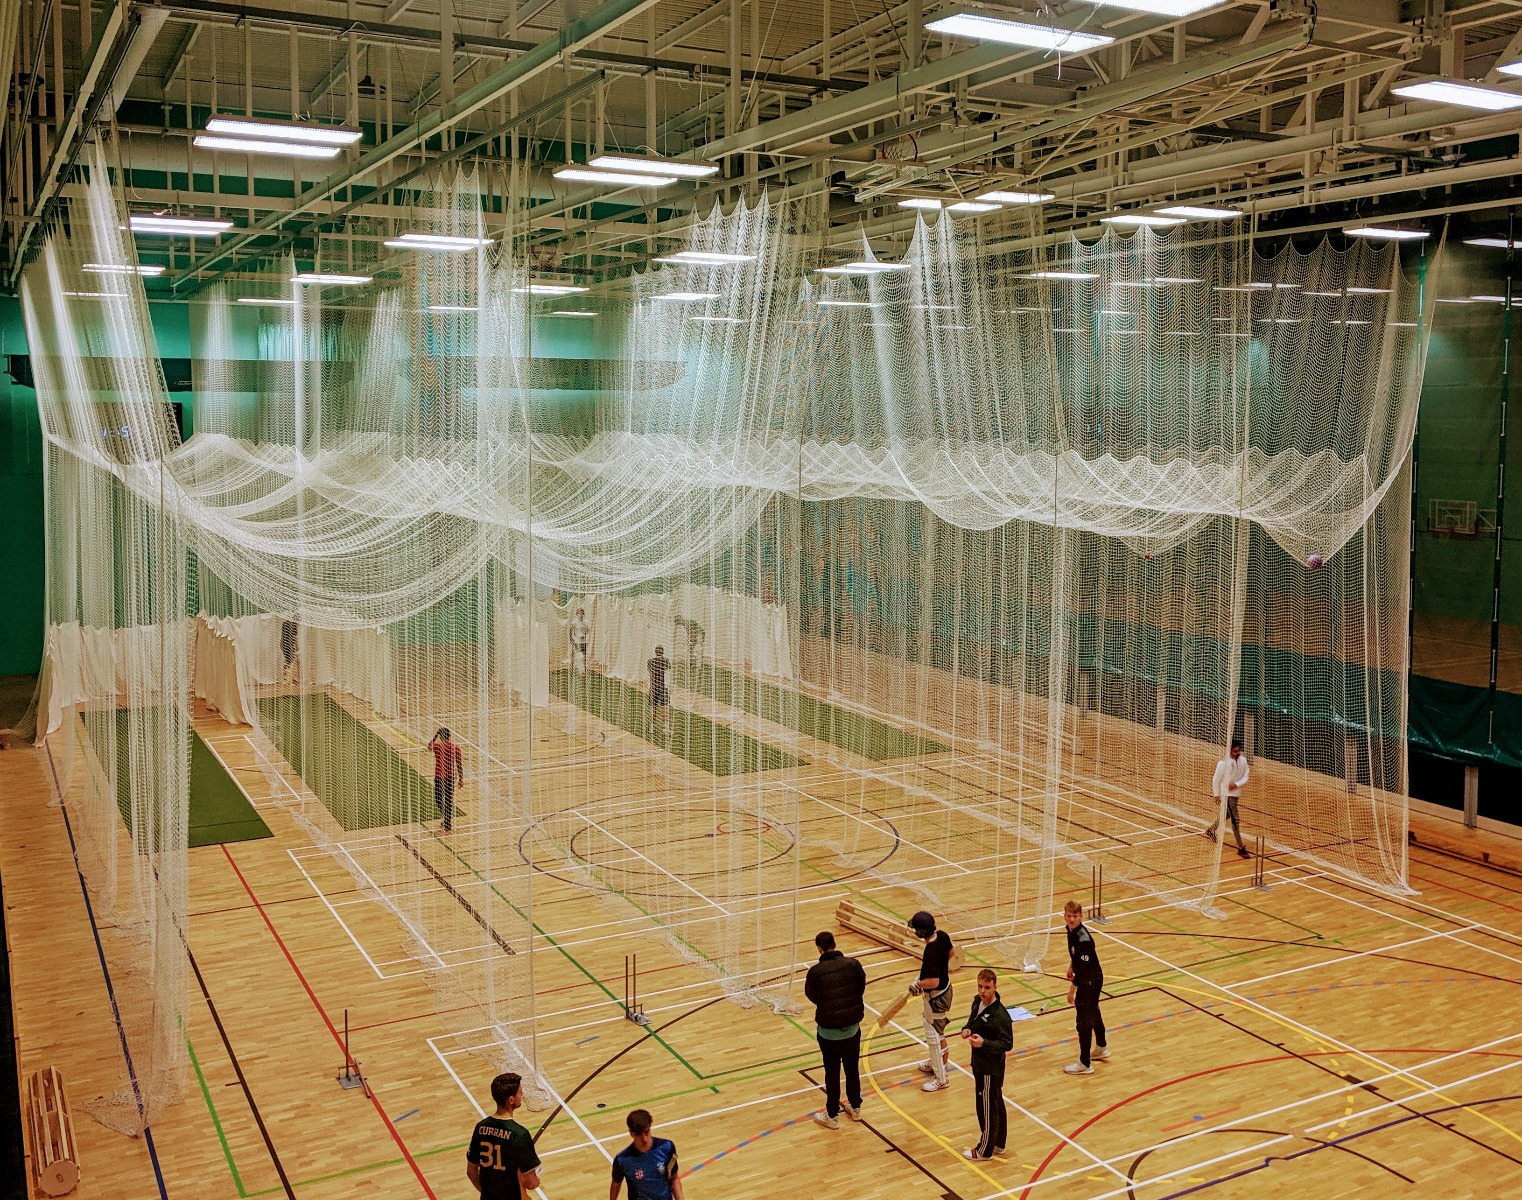 Indoor cricket practice netting